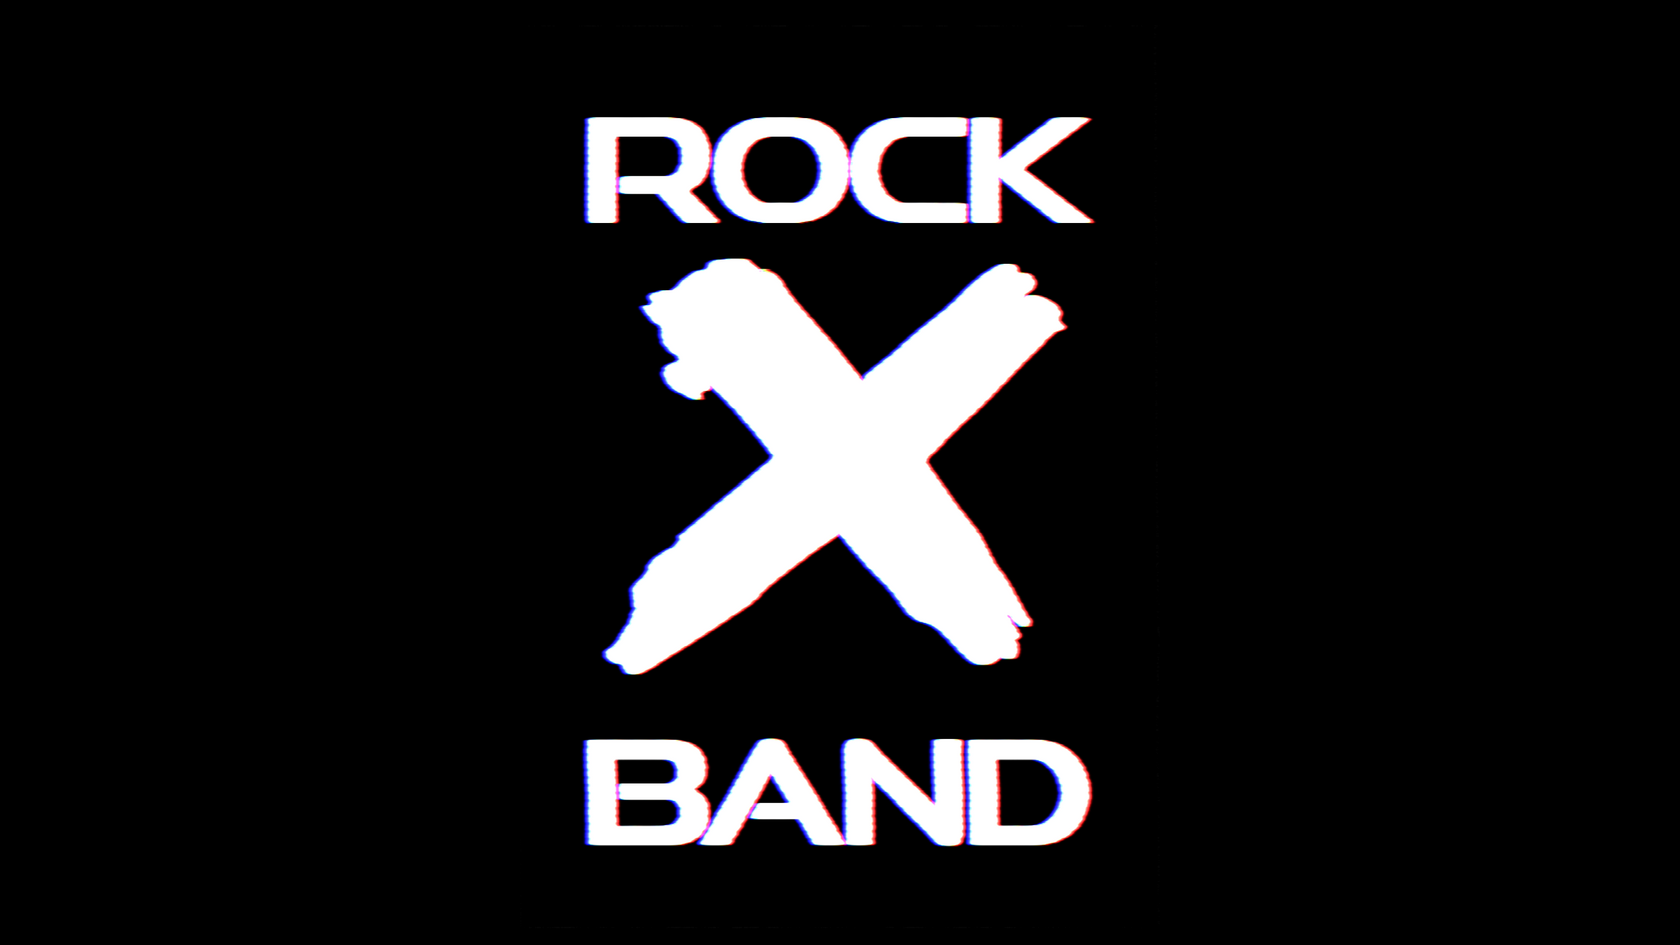 Rock X Cover Band